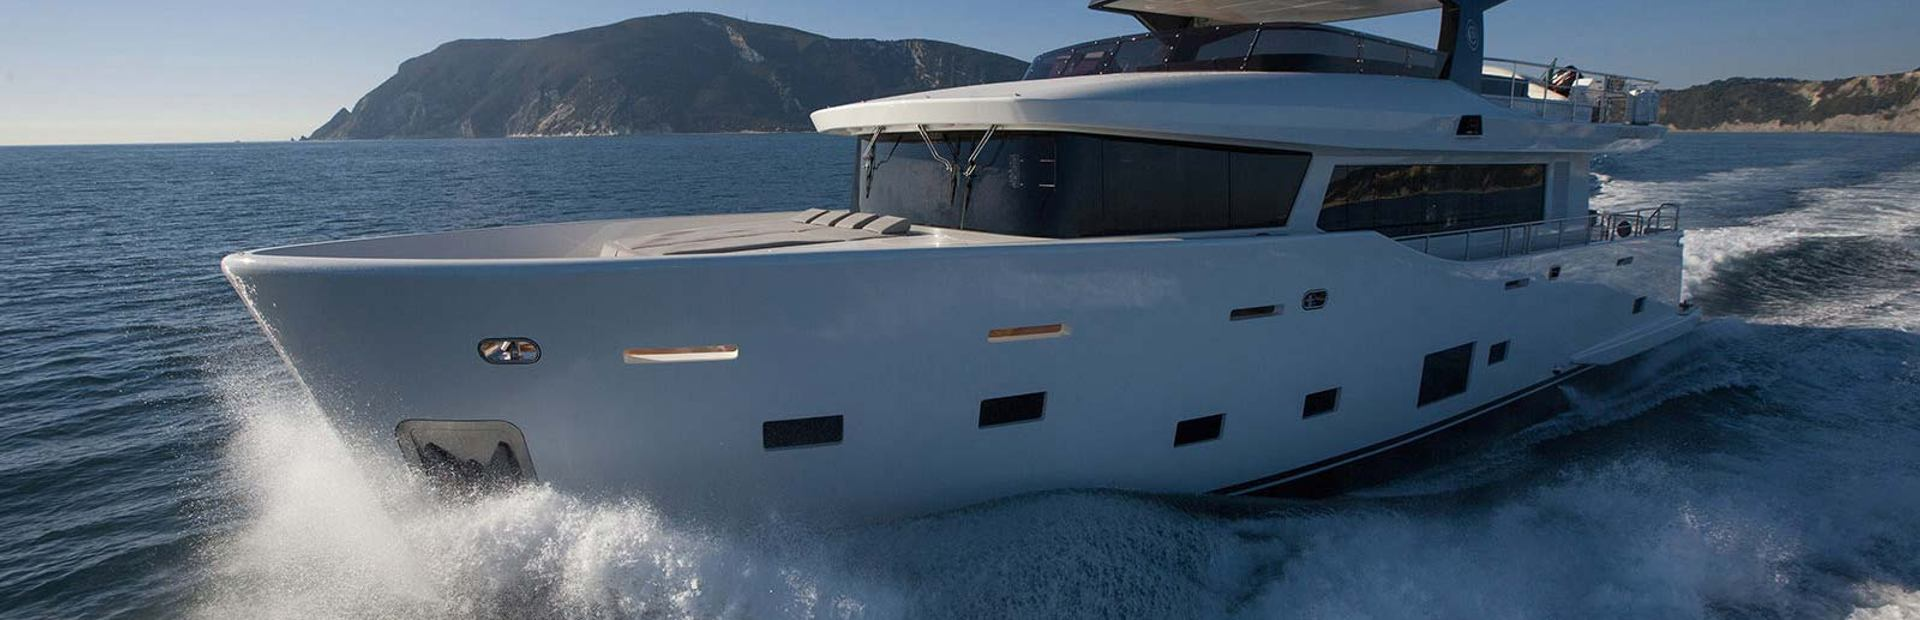 Cantiere Delle Marche Nauta Air 90 Yacht Charter